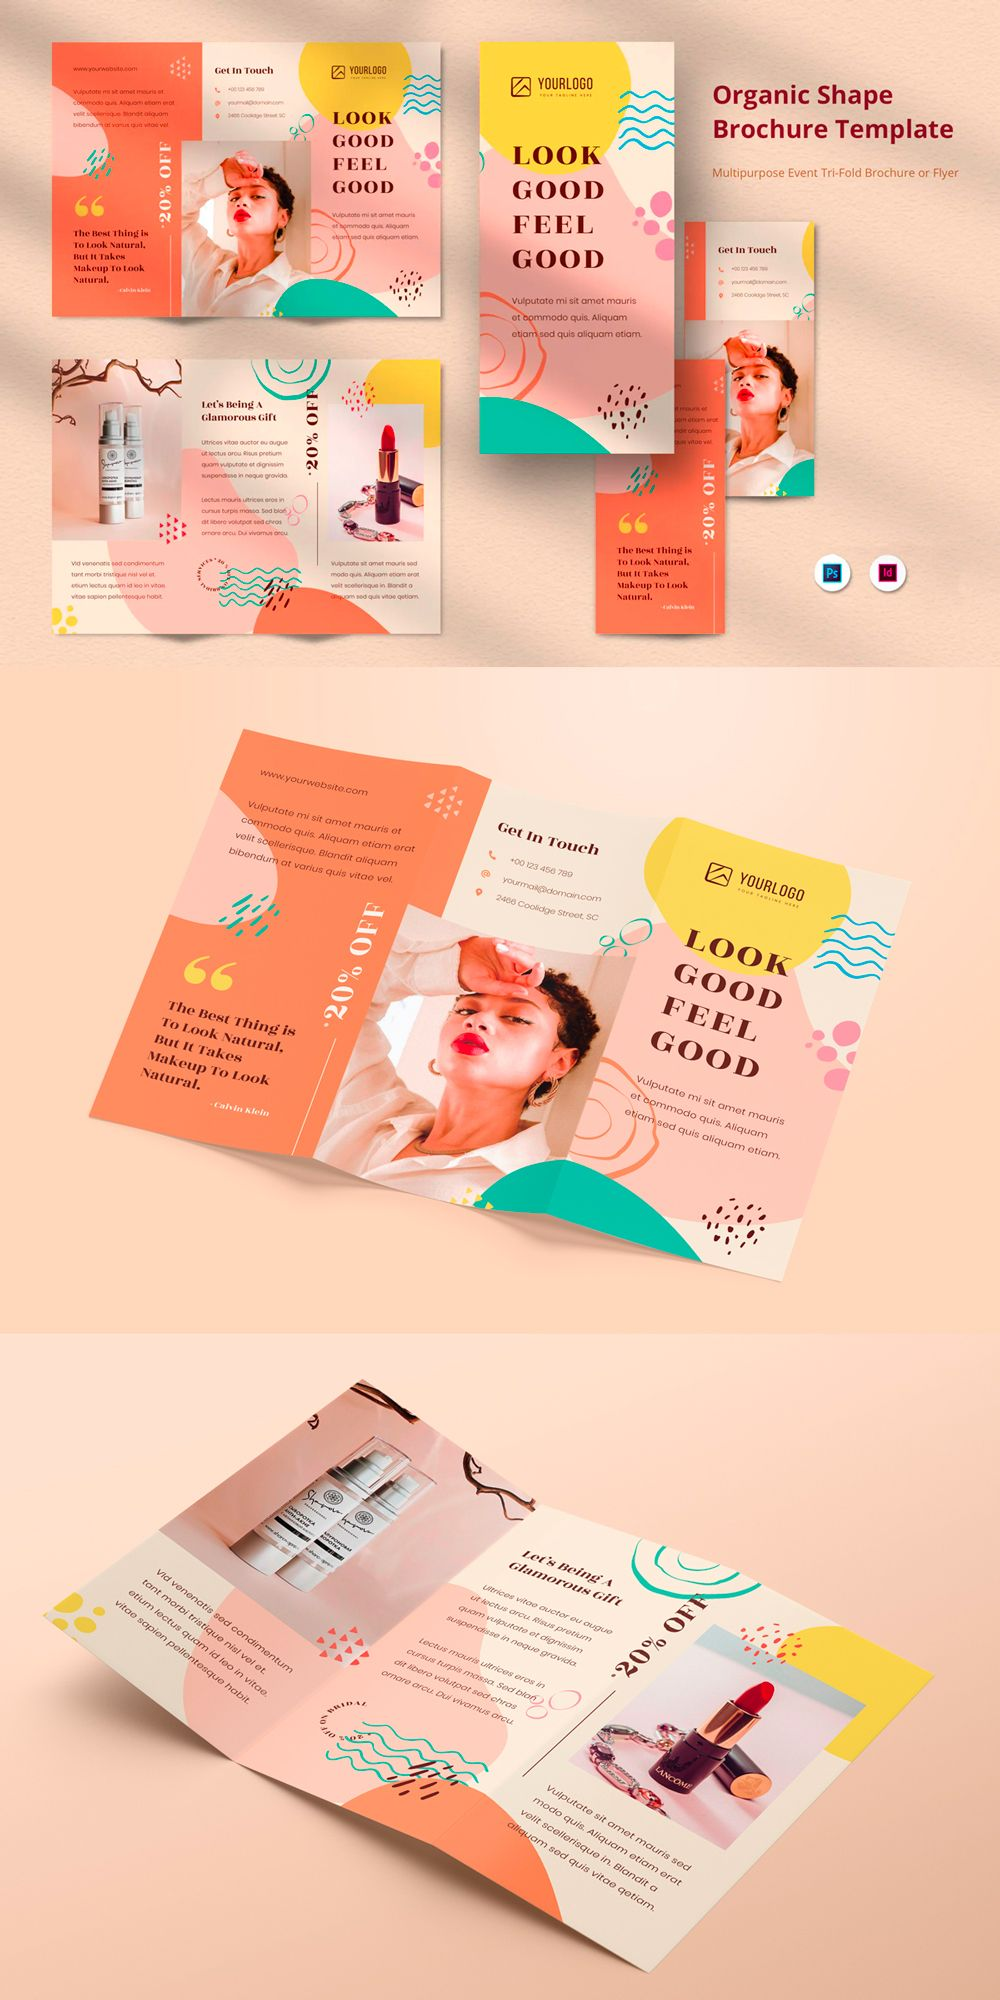 Creative Minimalist Abstract Organic Pattern Shape Business Brochure Trifold is elegant, modern, simple, minimalist and professional corporate business brochure or flyer template. Suitable for any kind of businesses, company, corporate and can be also used for any other publishing like annual report, promotions and company profile.